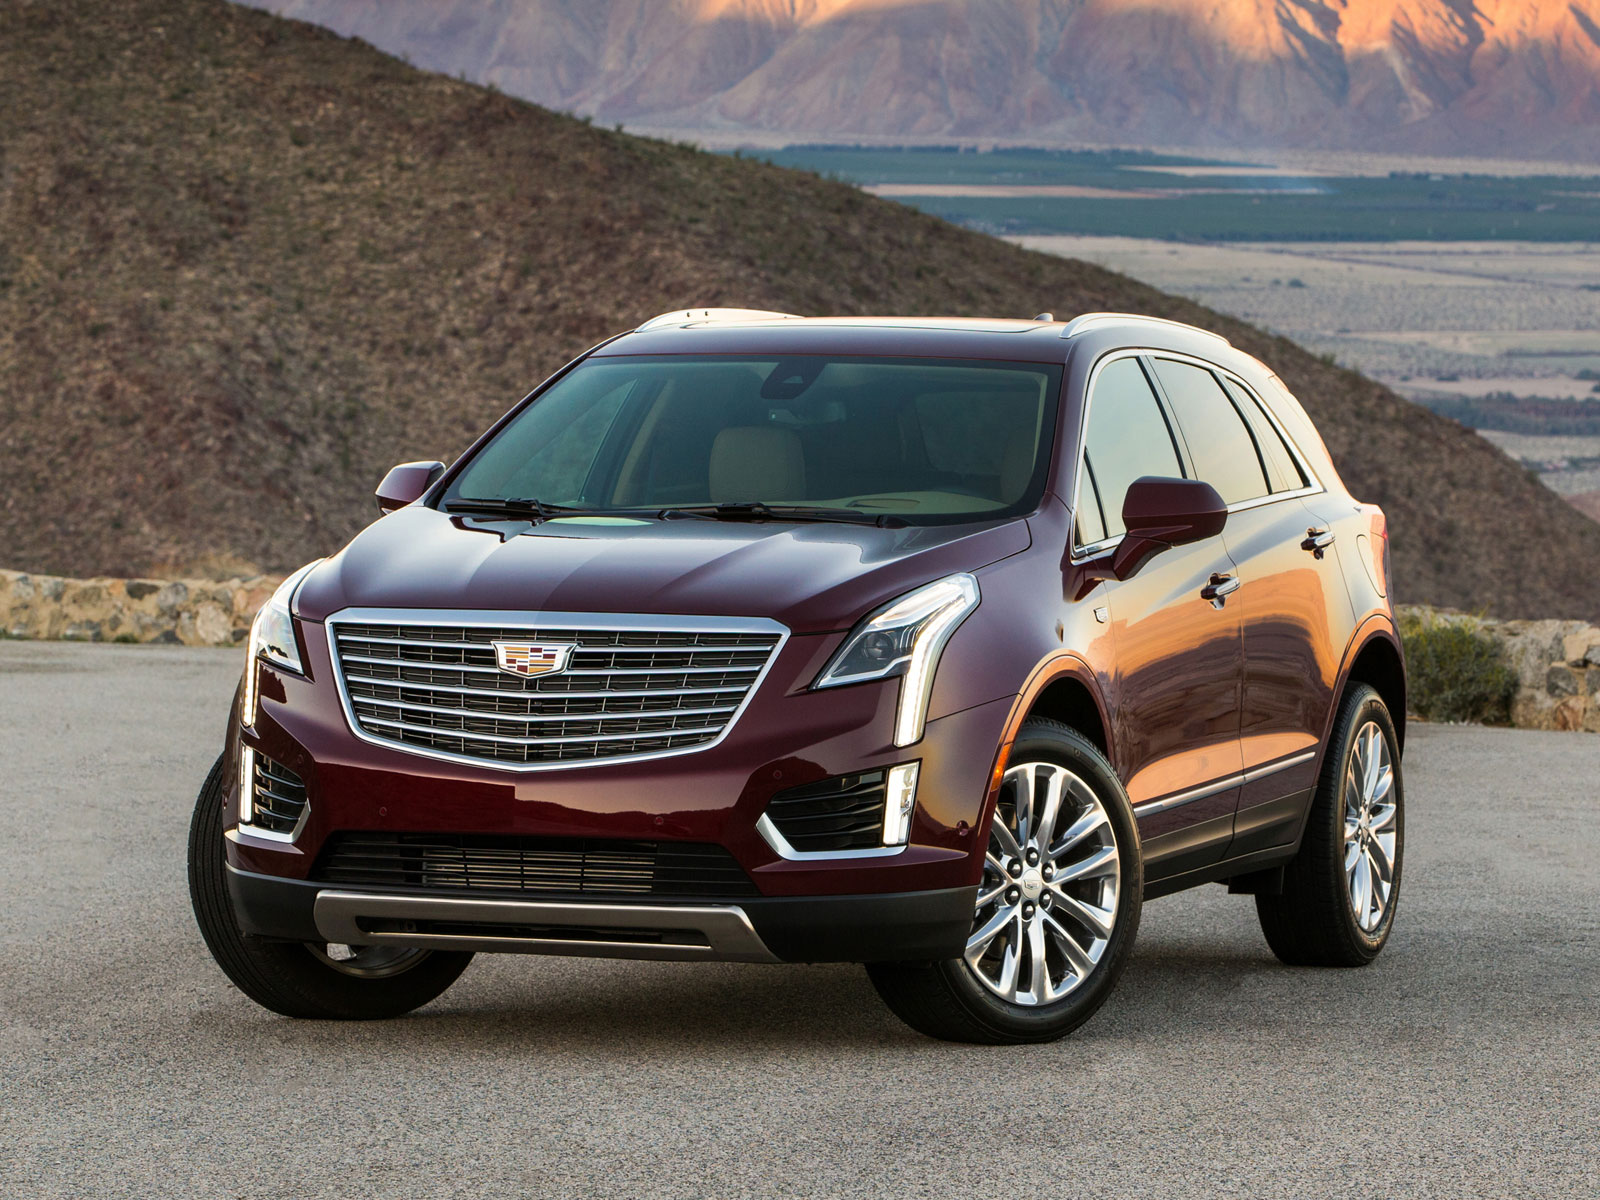 2016 cadillac xt5 autoguru. Black Bedroom Furniture Sets. Home Design Ideas